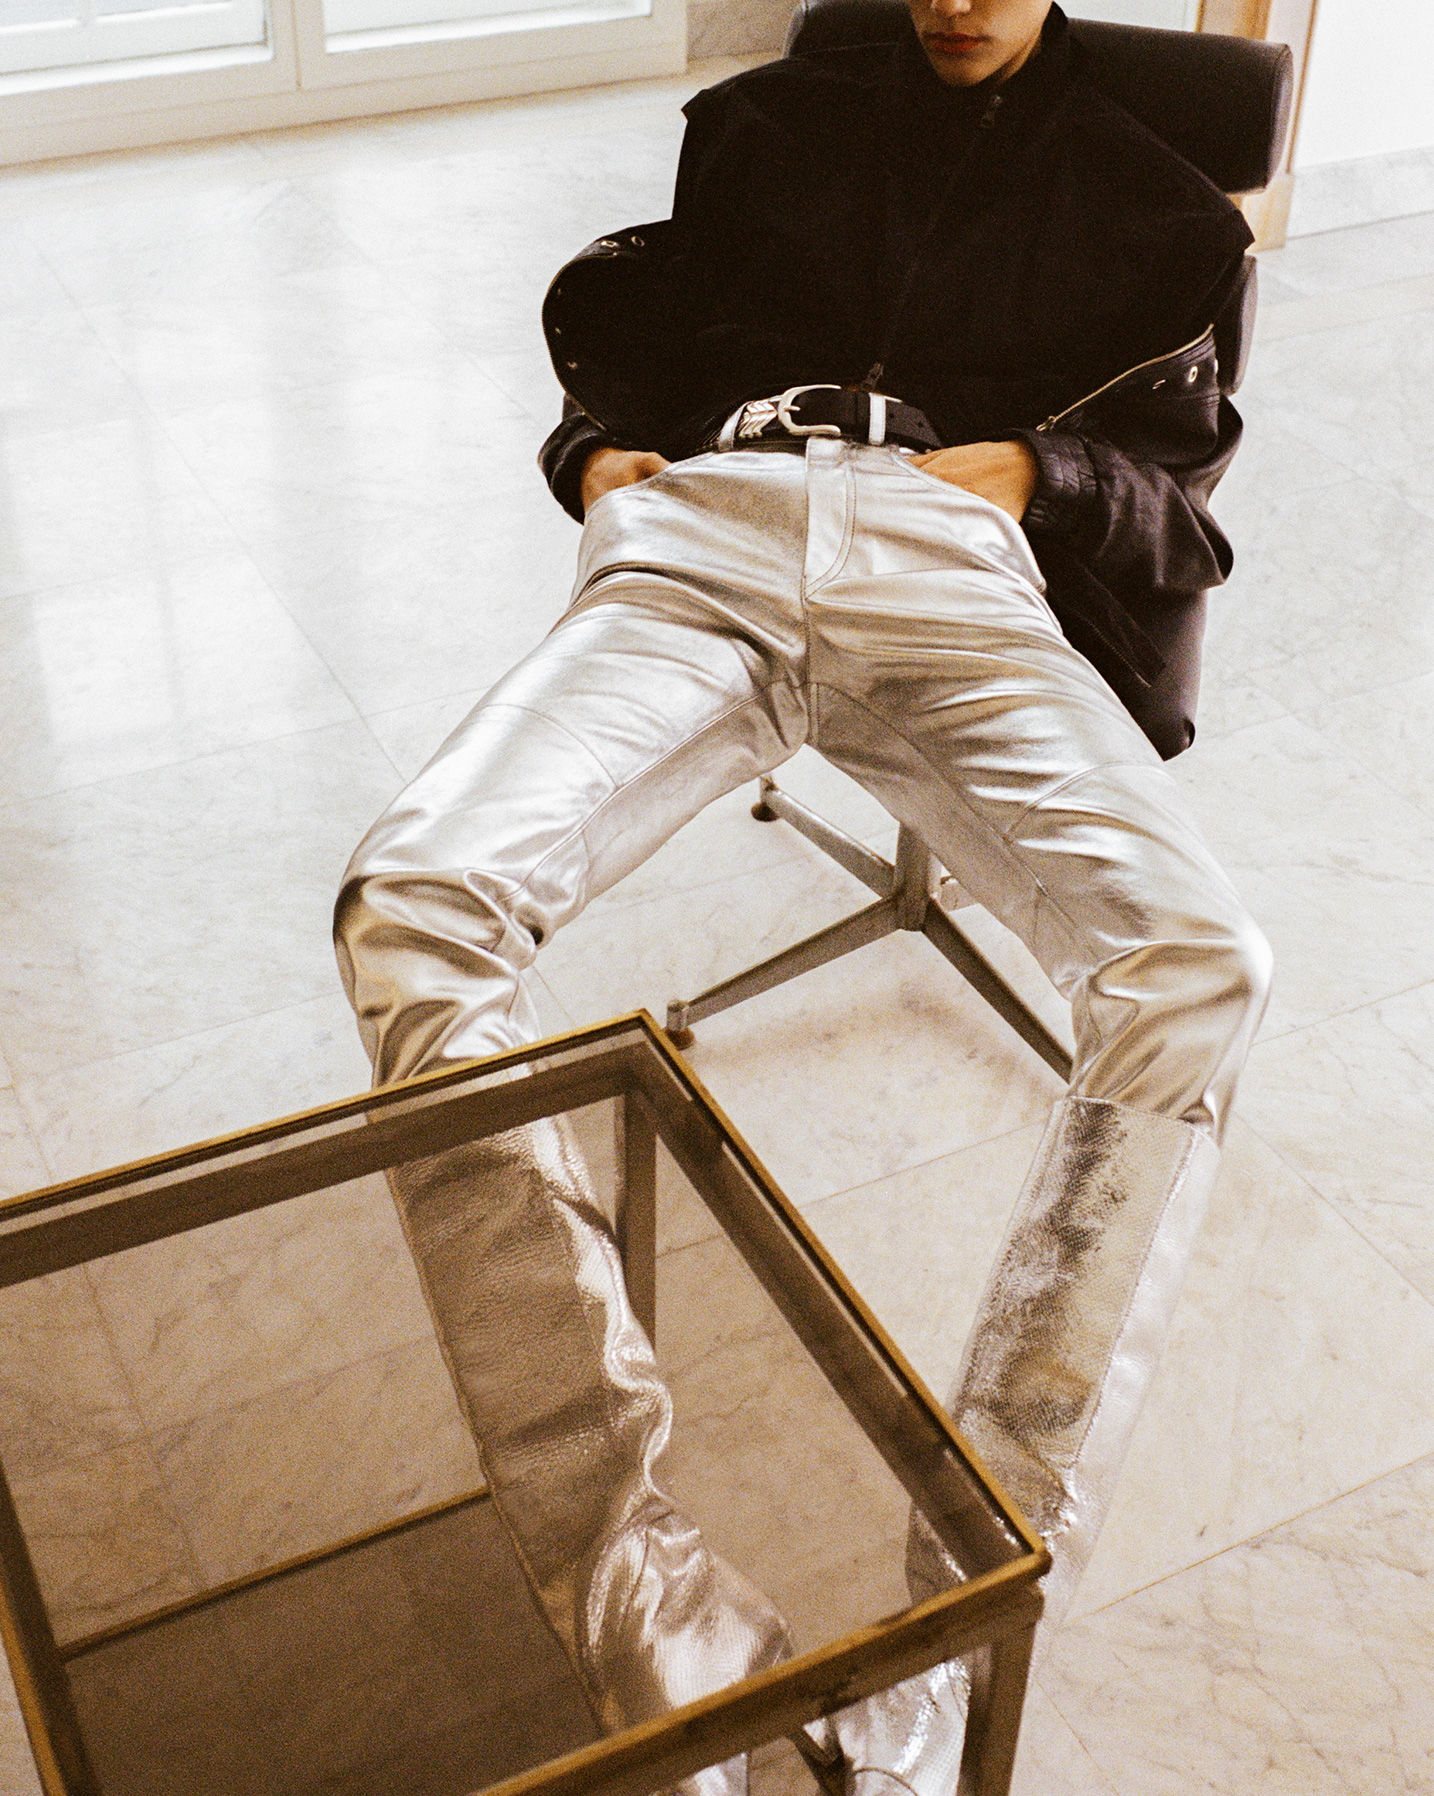 The model is sitting, wearing the Qlerie Jacket, the Wayne pants and the Laomi boots.